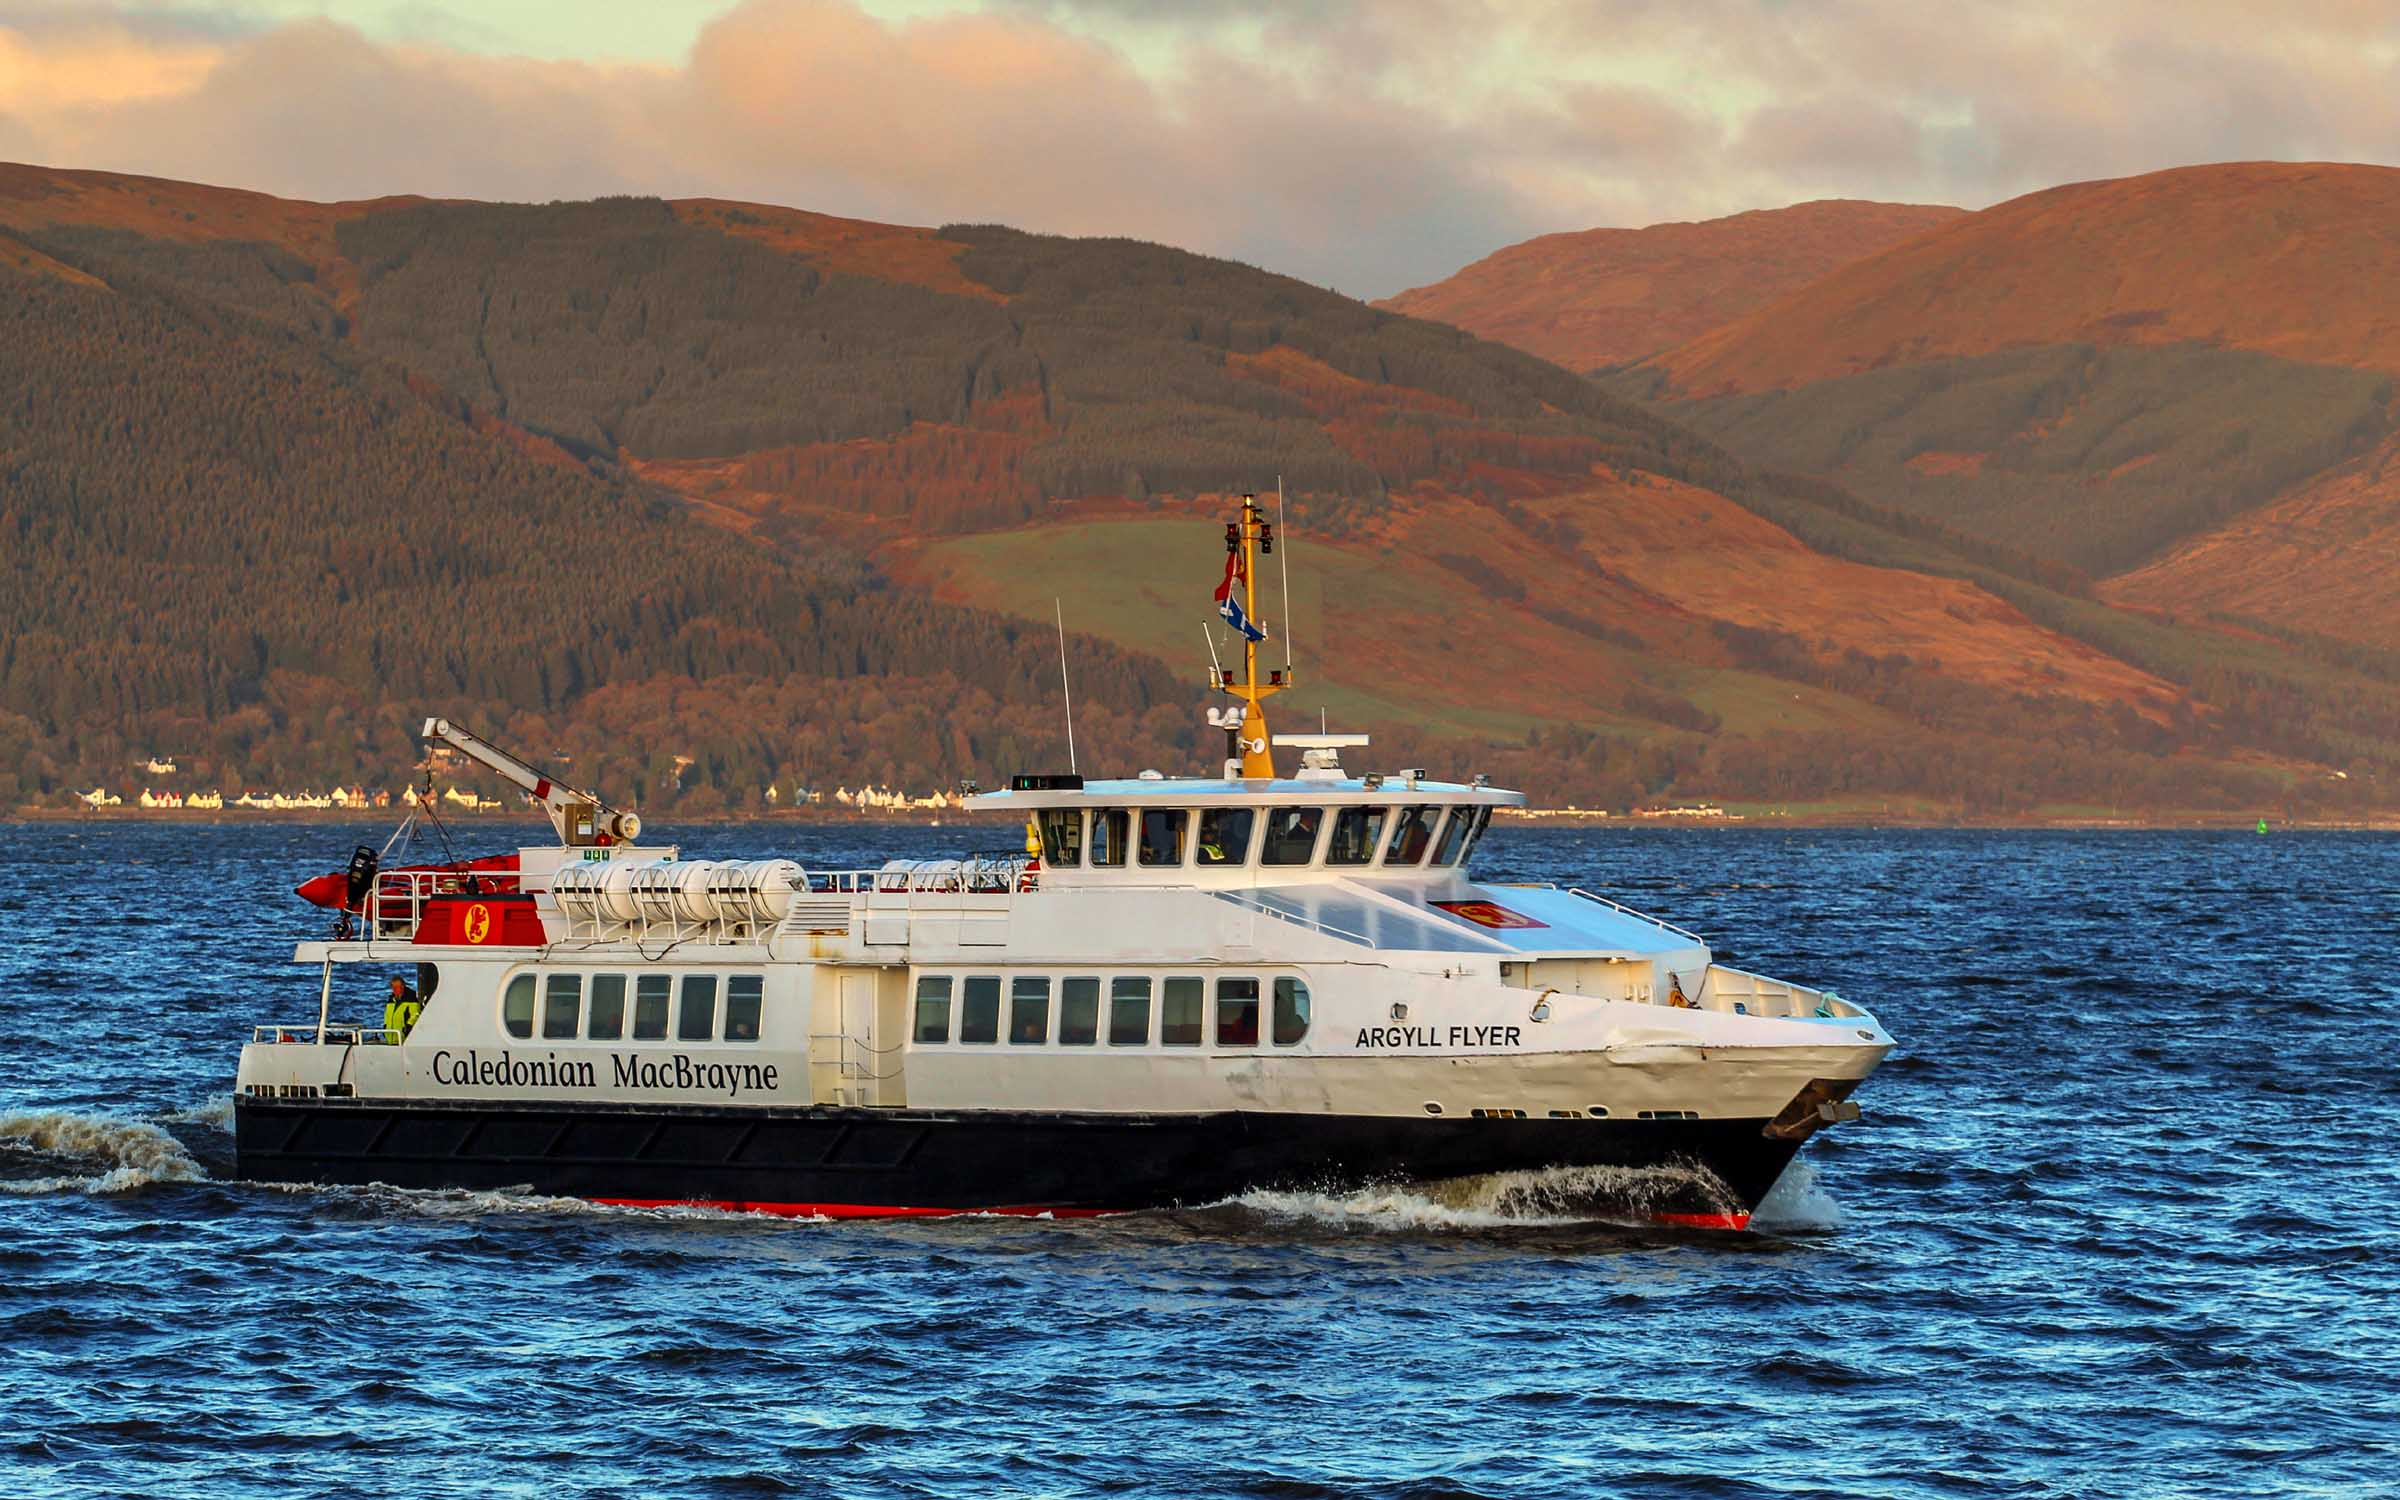 Argyll Flyer in Calmac colours, 2020 (Ships of CalMac)